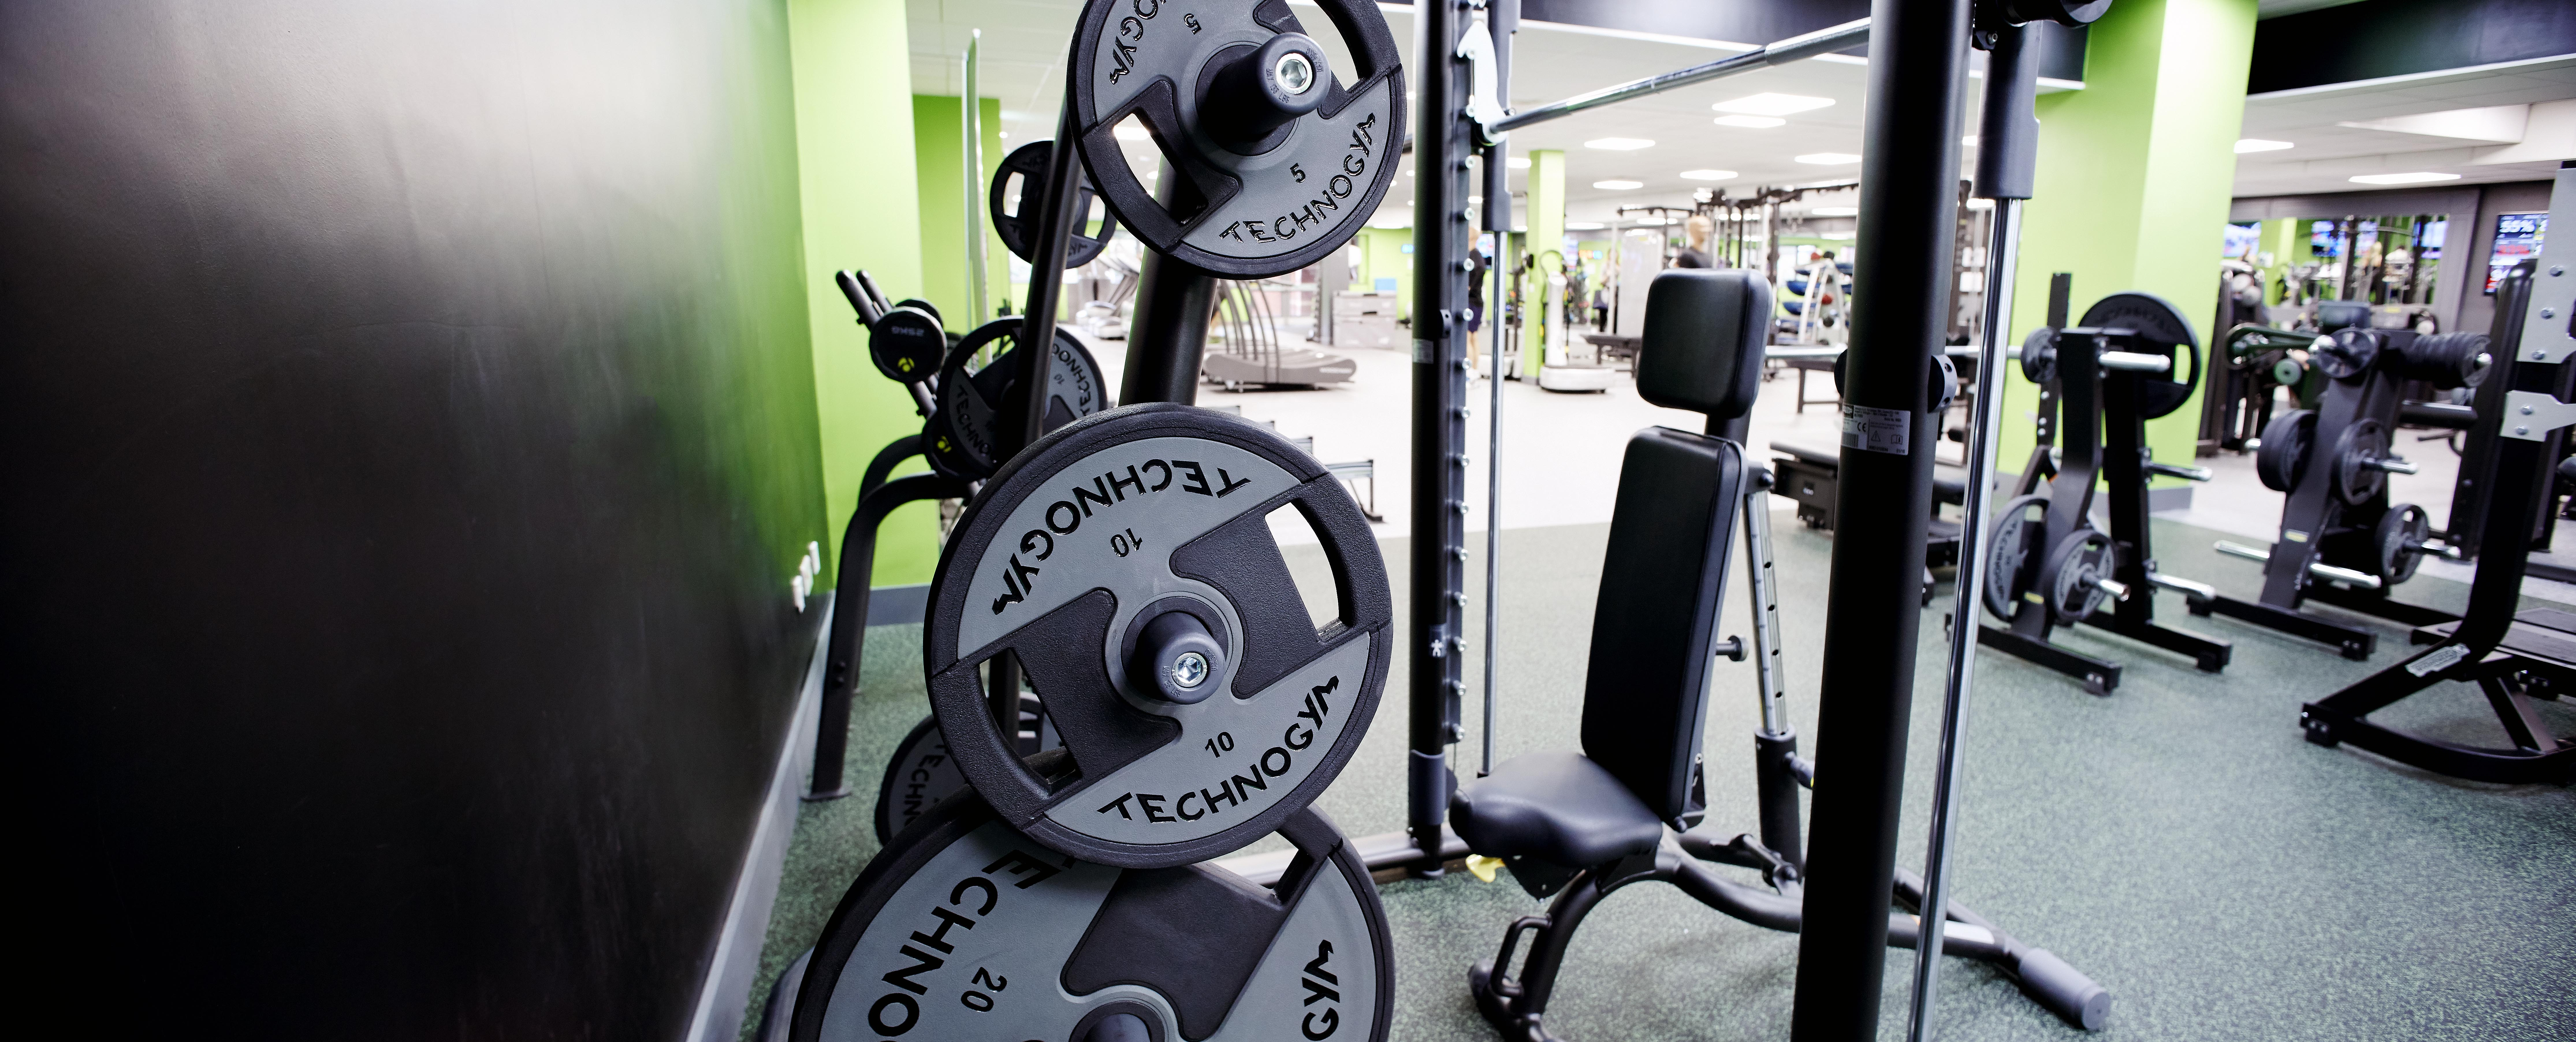 Gym in St David's, Chester with Fitness Classes & Pool